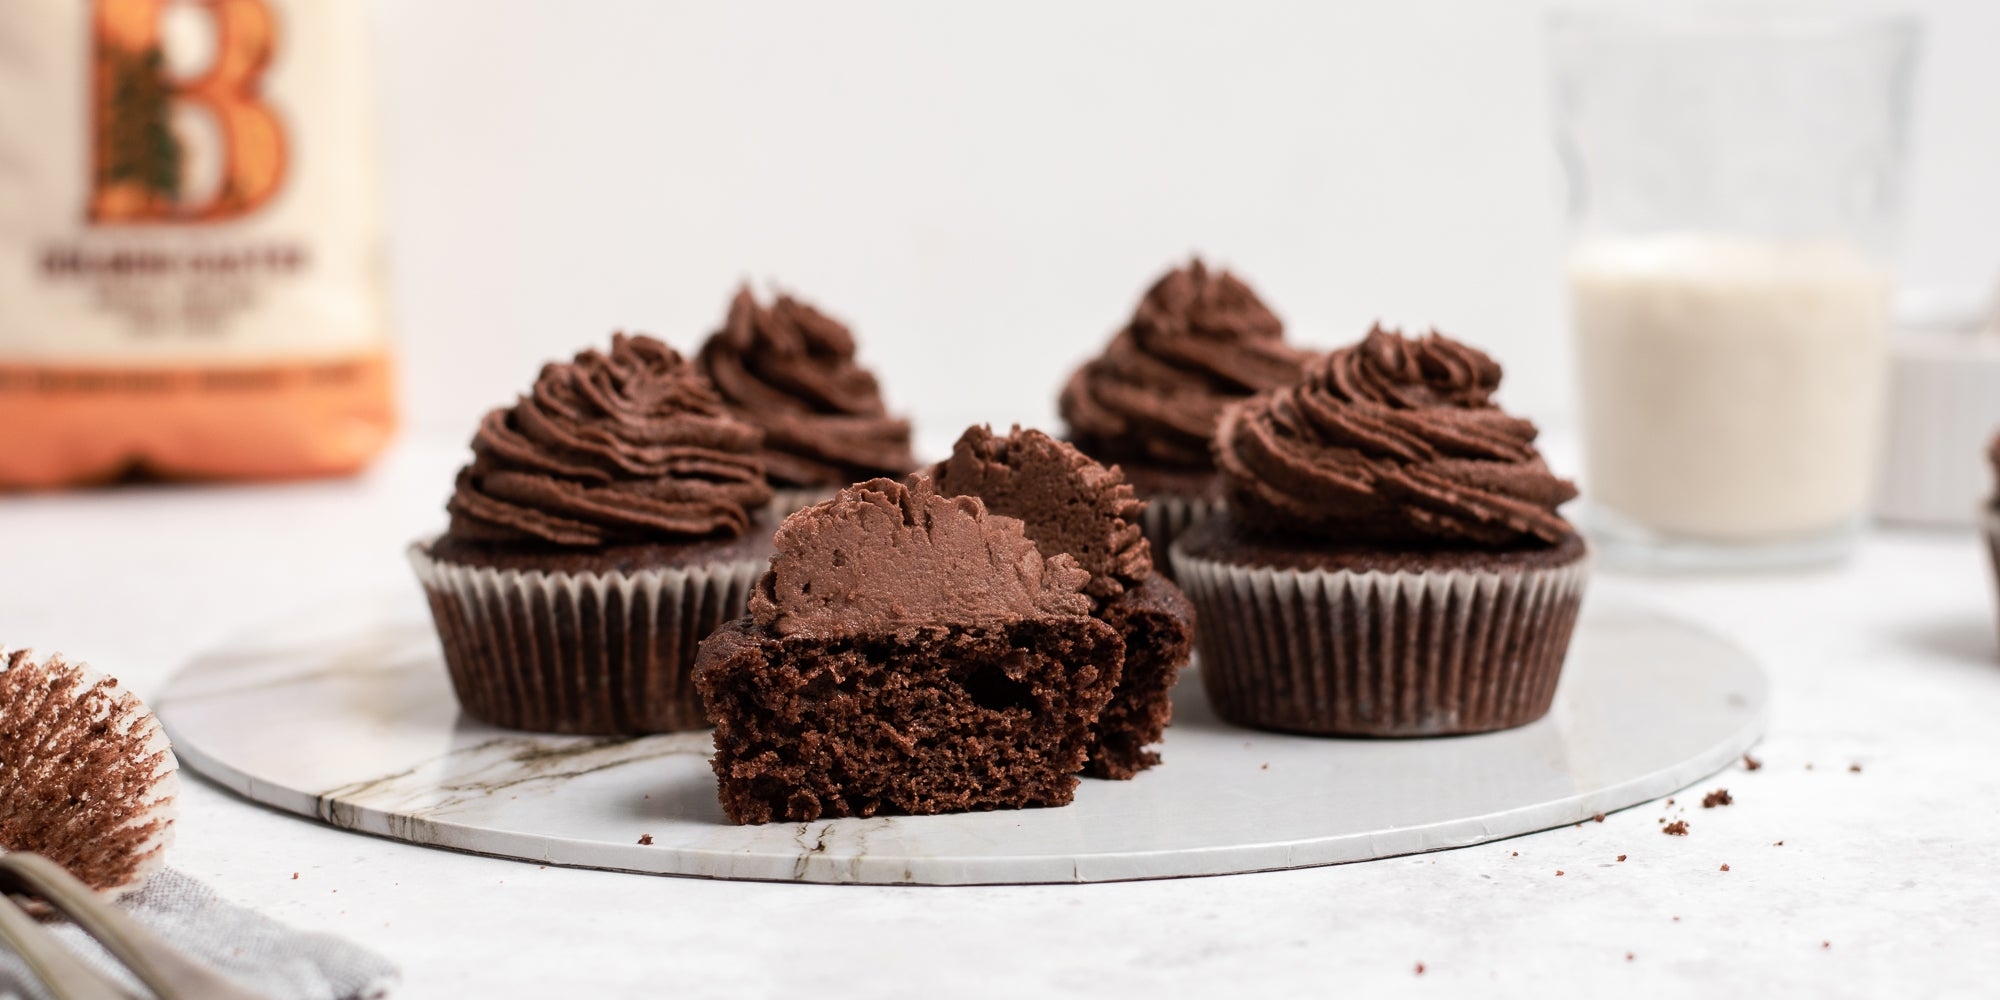 Close up of Vegan Chocolate Cupcakes on a marble board, with a cupcake cut in half showing the centre. A pack of Billington's Golden Caster sugar in the background